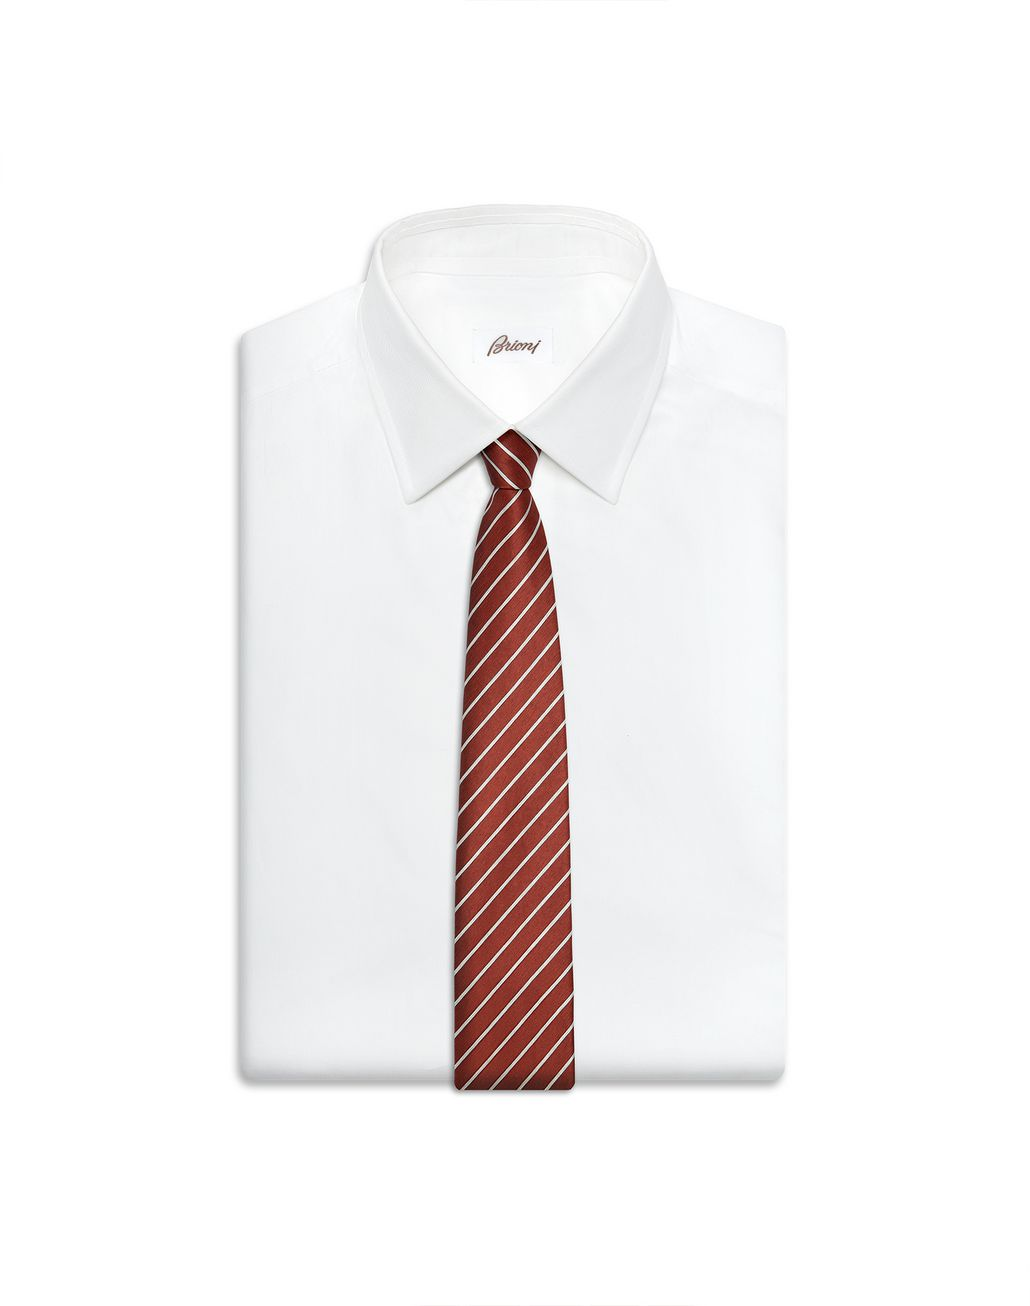 BRIONI Cravatta Regimental Rossa e Madreperla Cravatta [*** pickupInStoreShippingNotGuaranteed_info ***] e